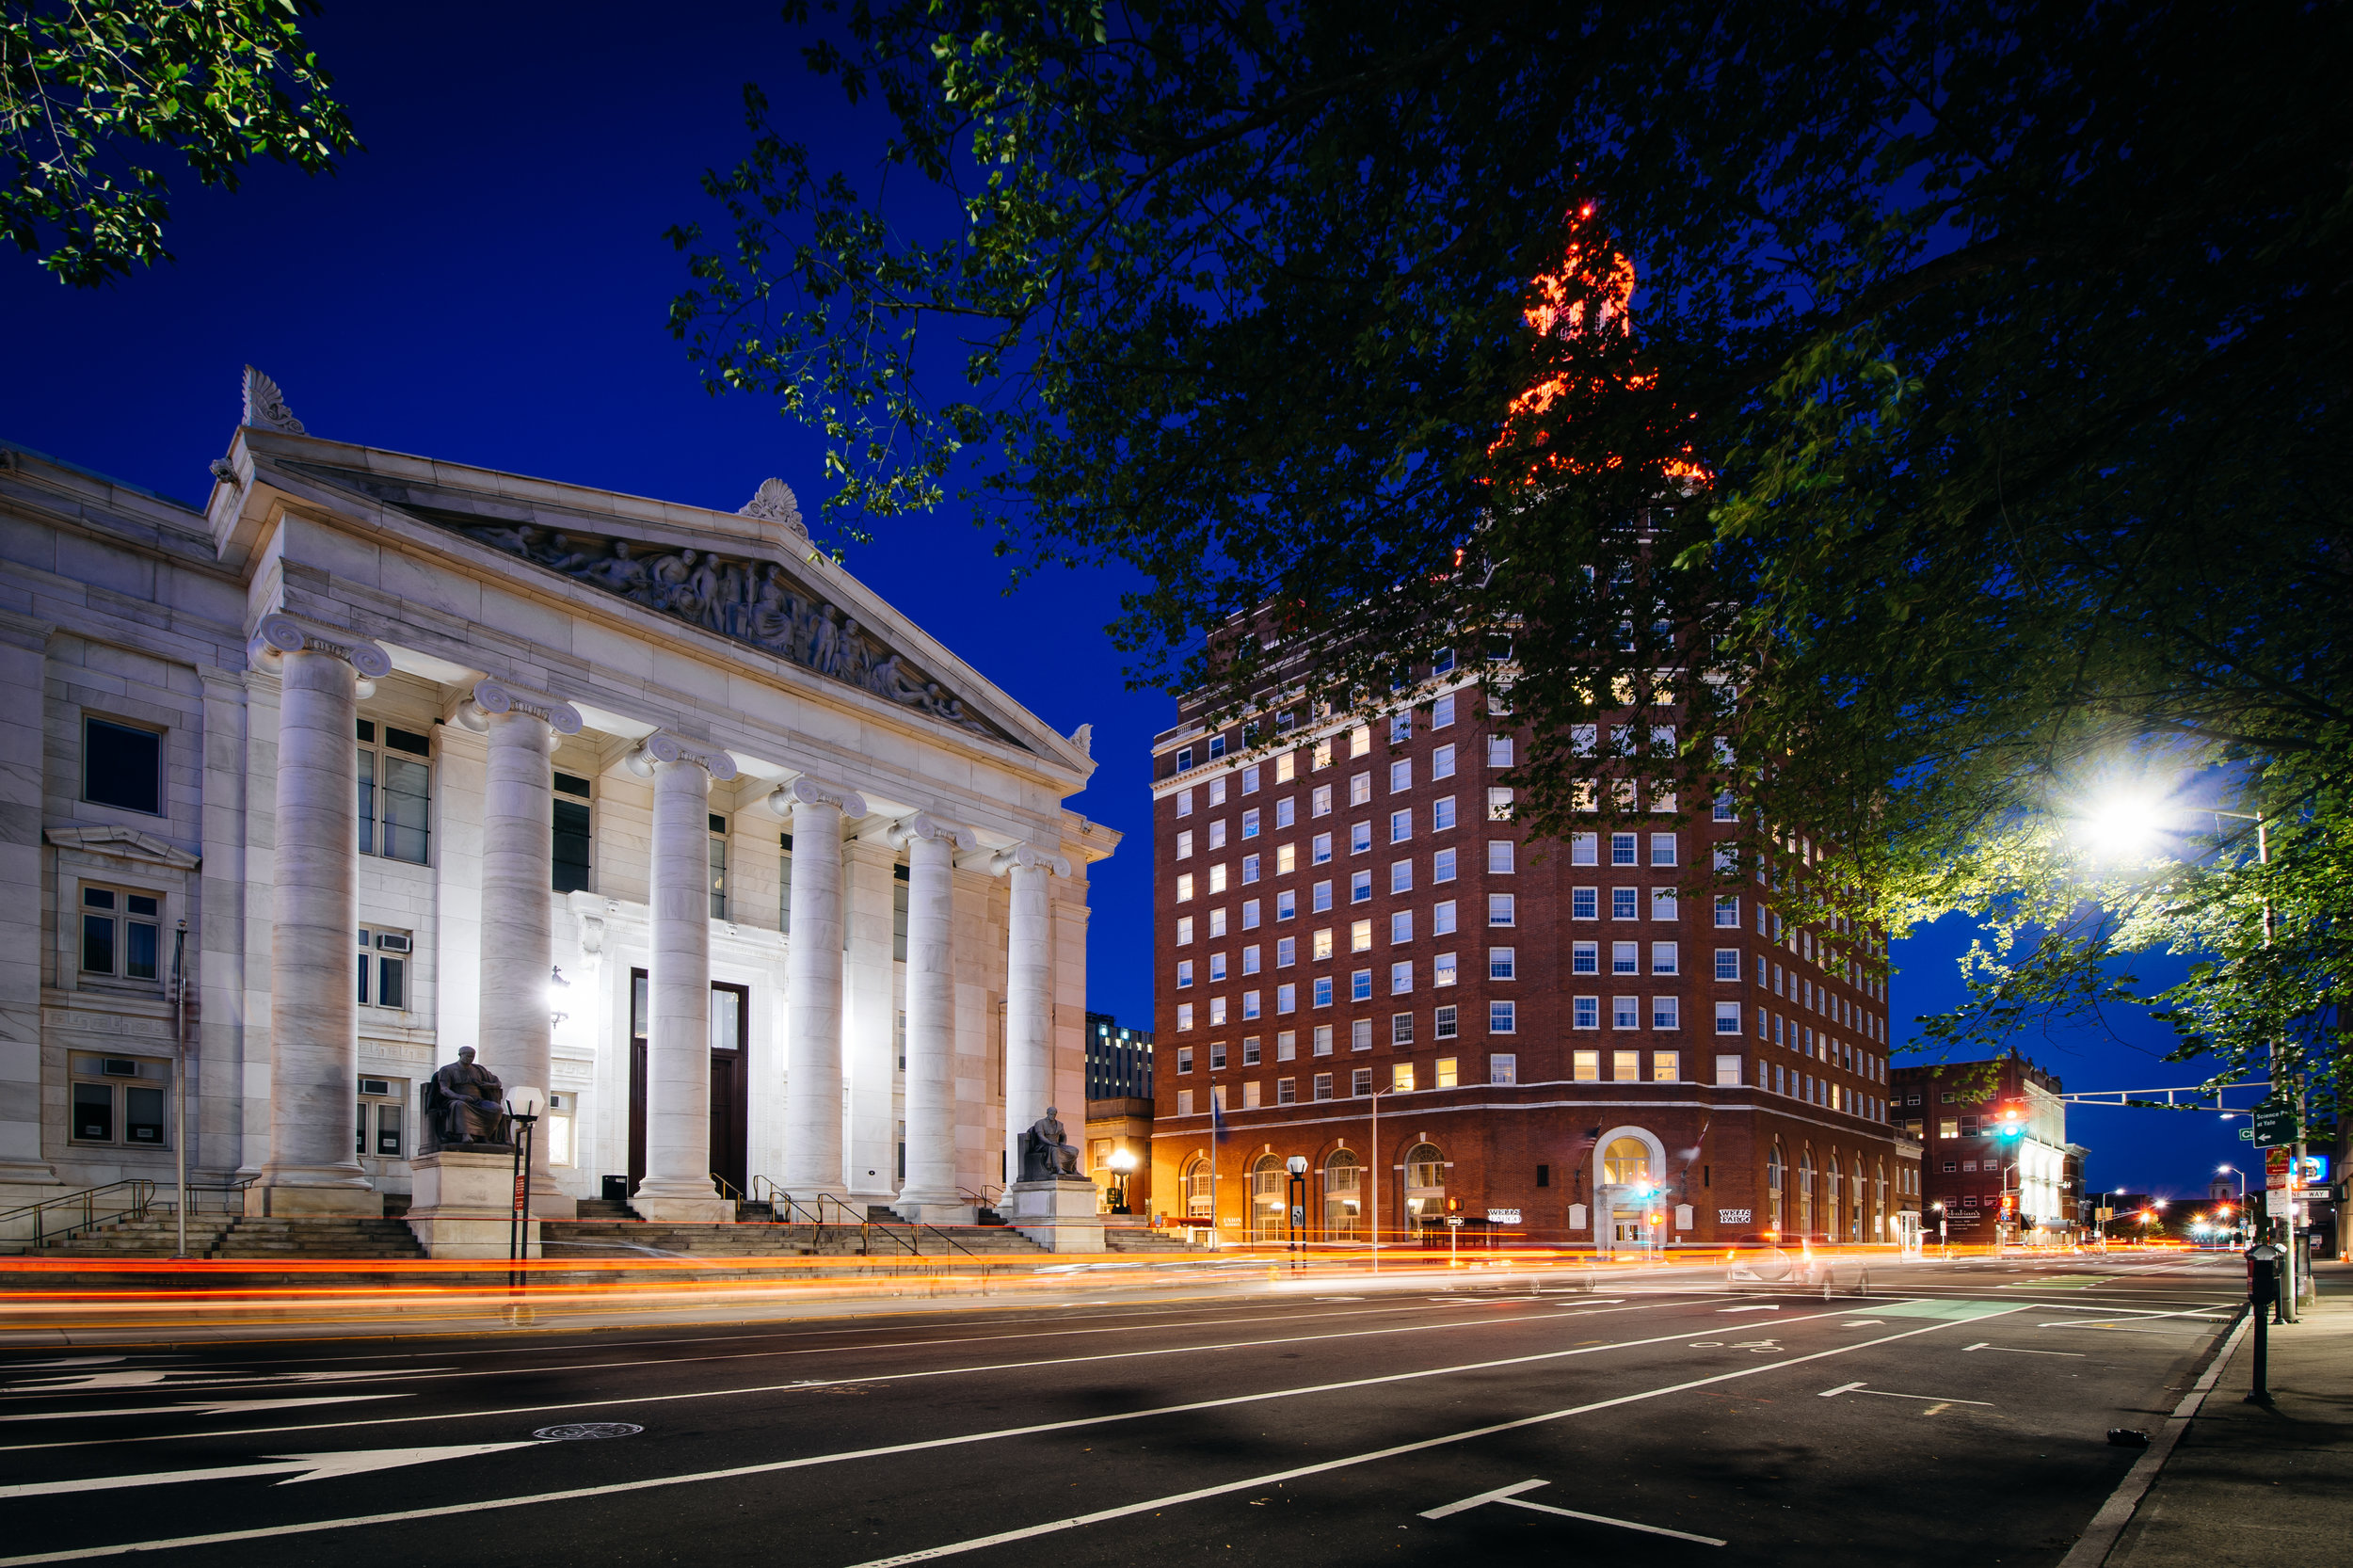 Buildings along Elm Street at night, in downtown New Haven, Connecticut.-1.jpg